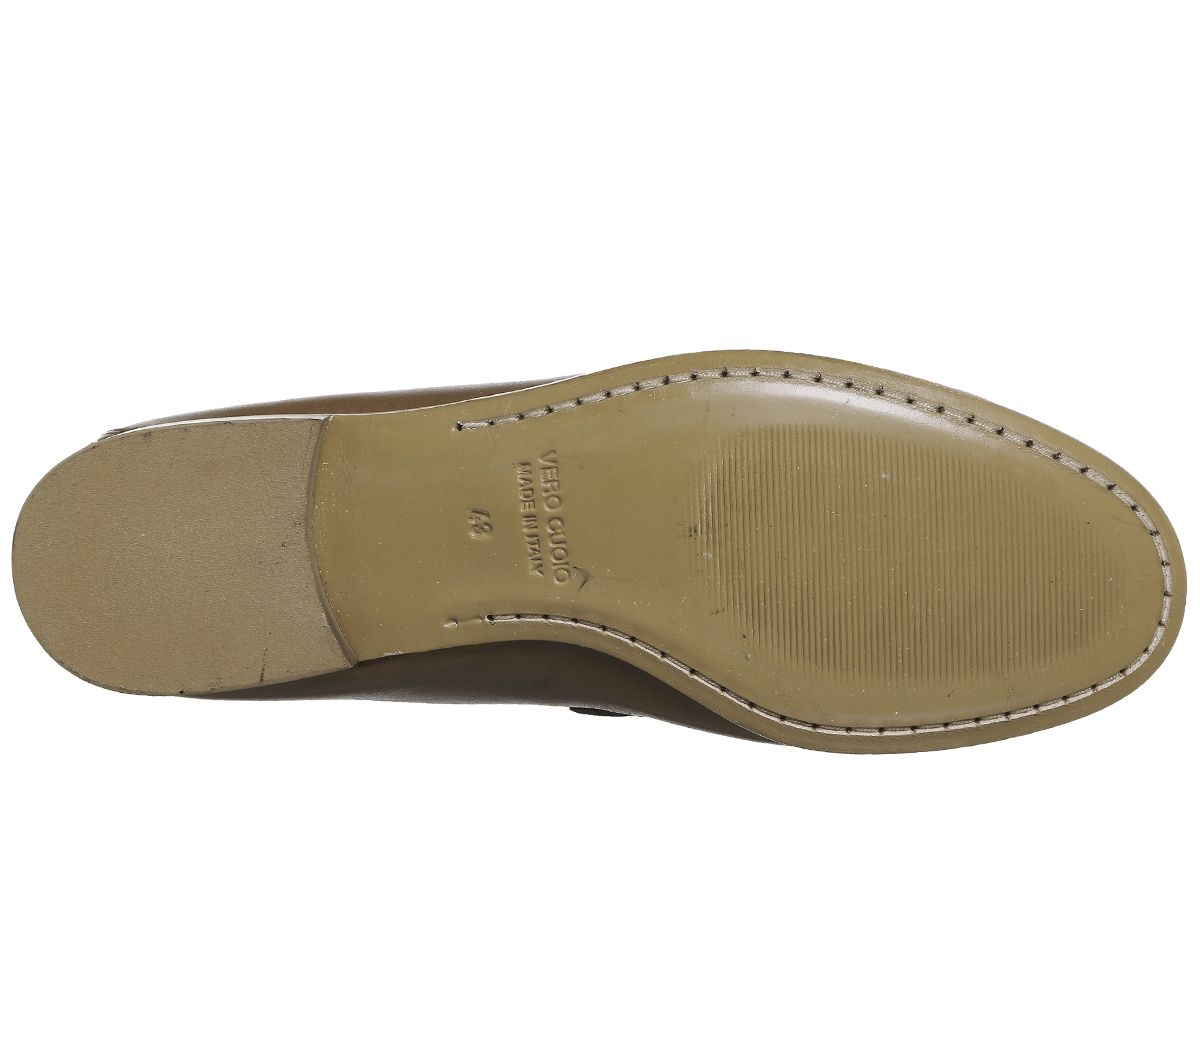 c07948663b8 Poste Famiglia Snaffle Loafers Tan Leather - Smart